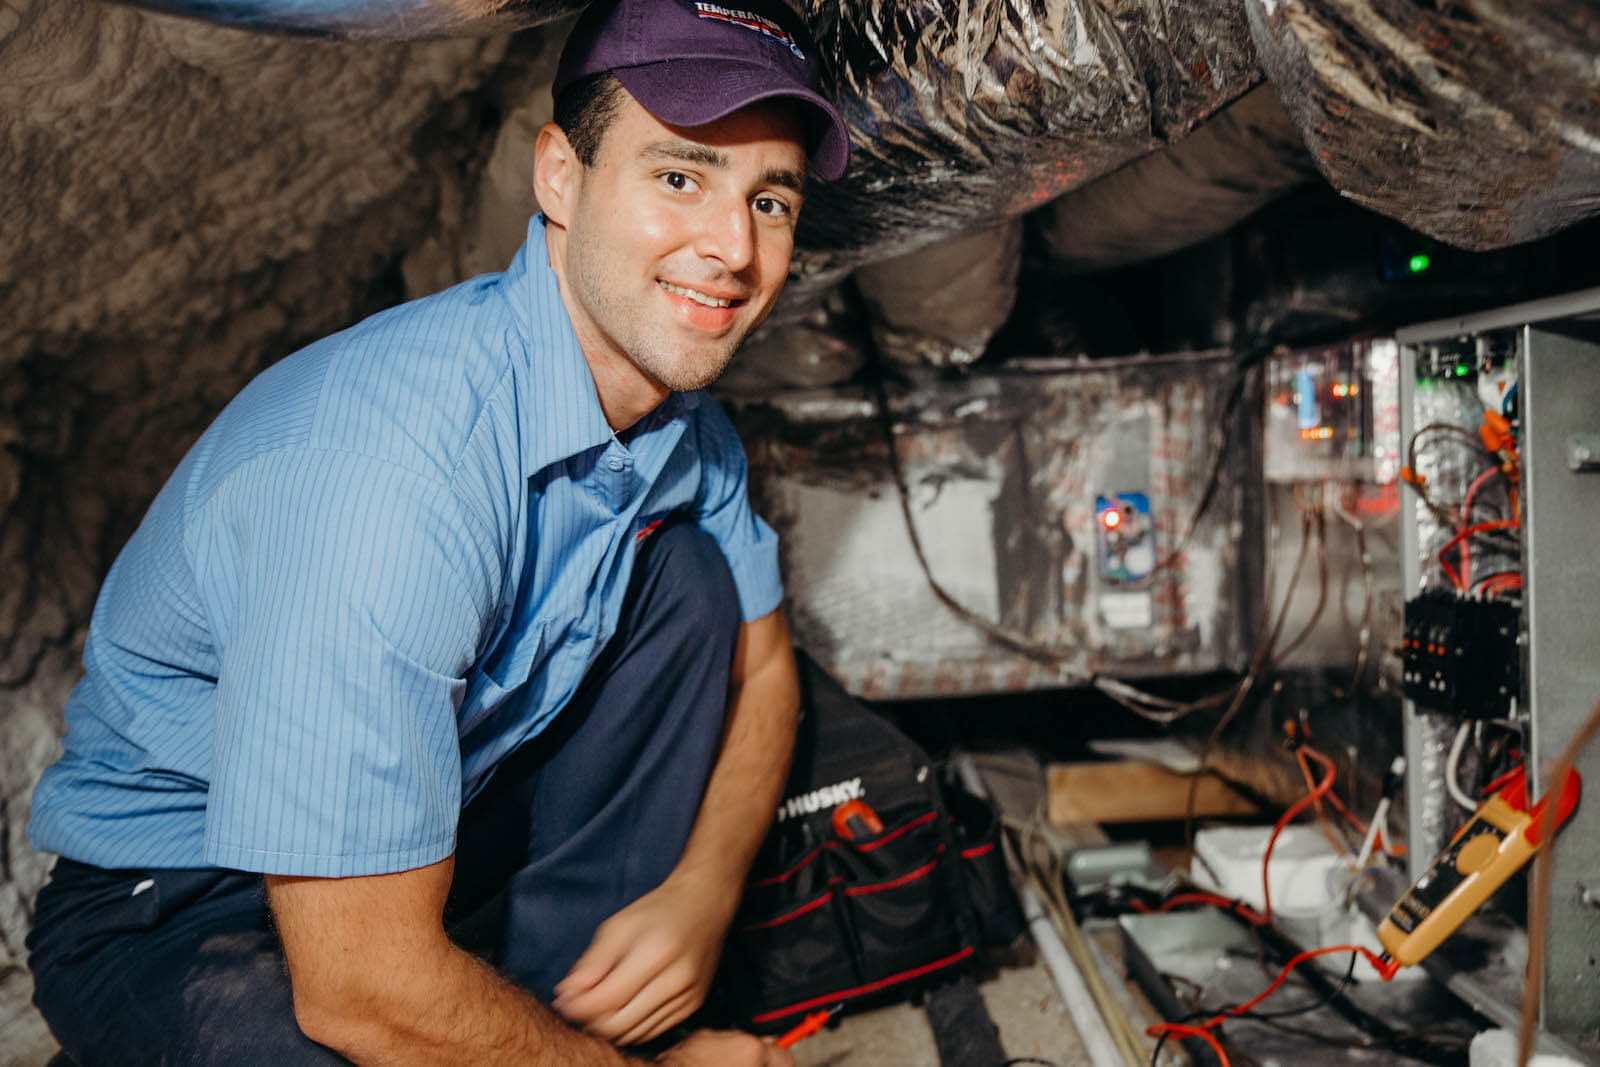 hvac technician maintaining an attic air conditioning system